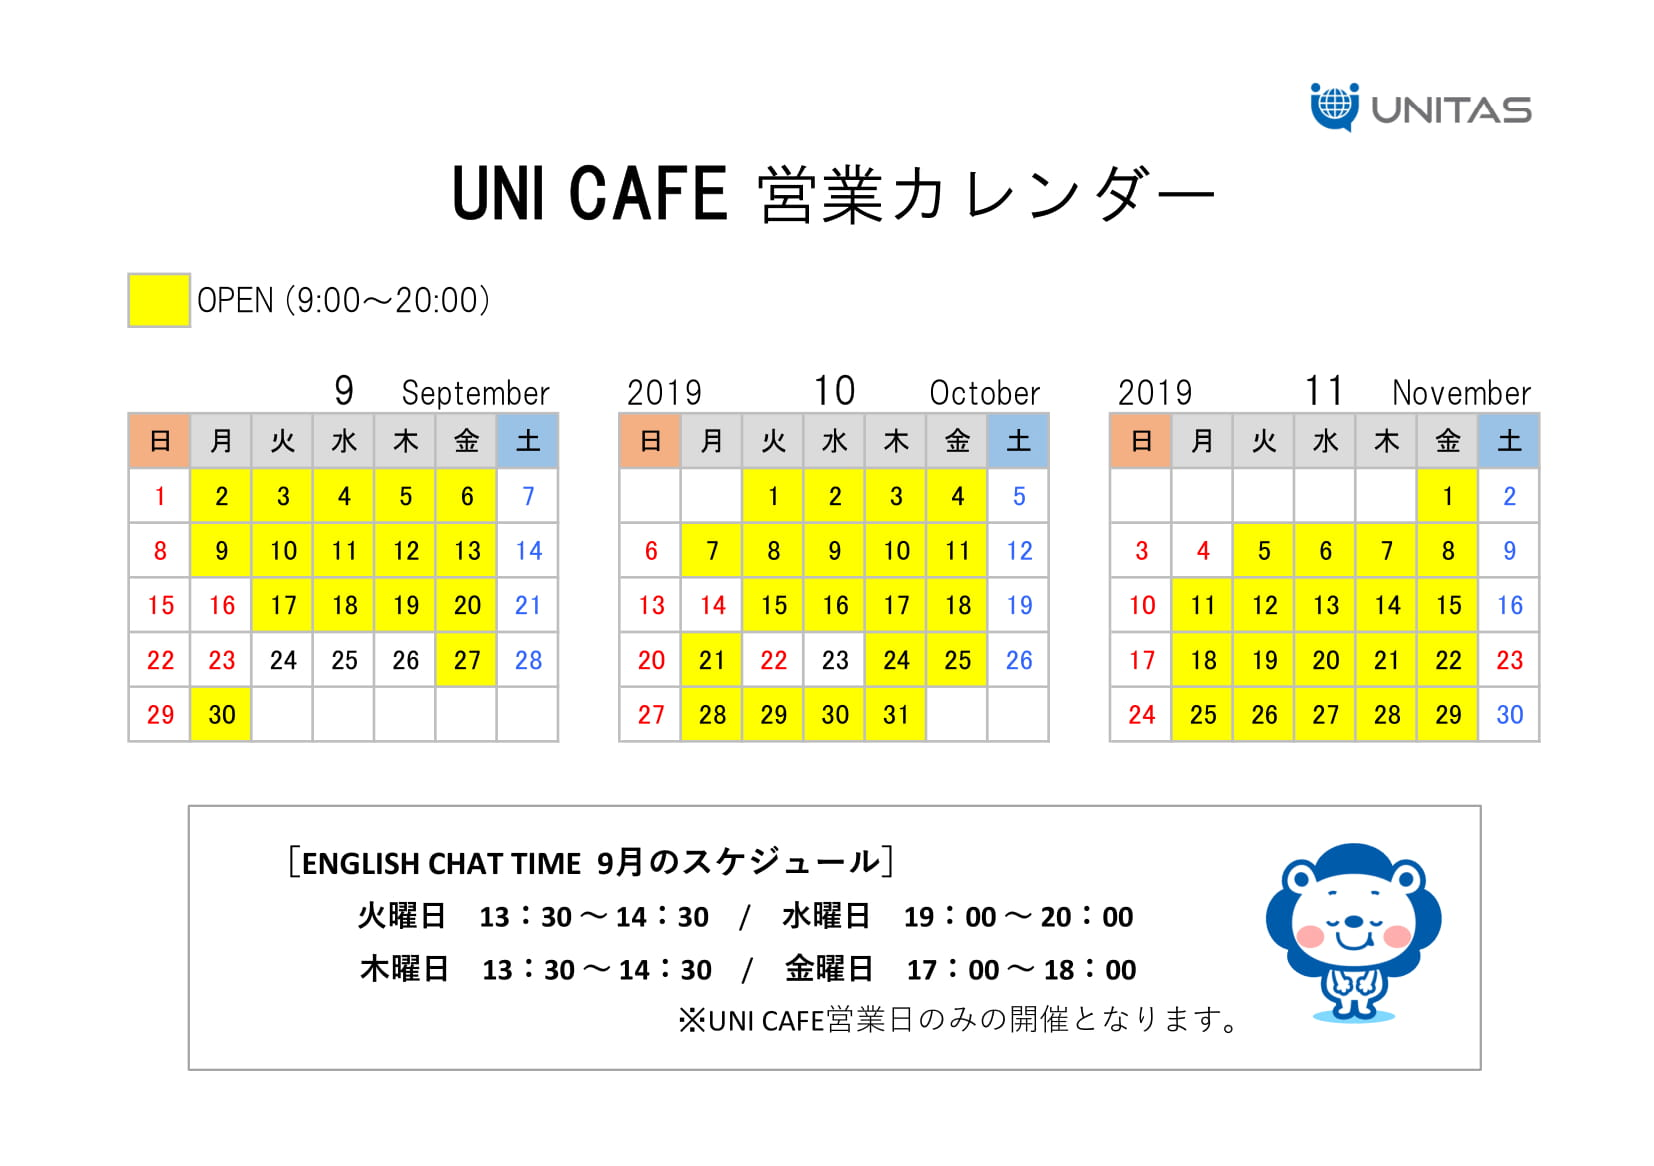 Unitas Uni cafe English chat time